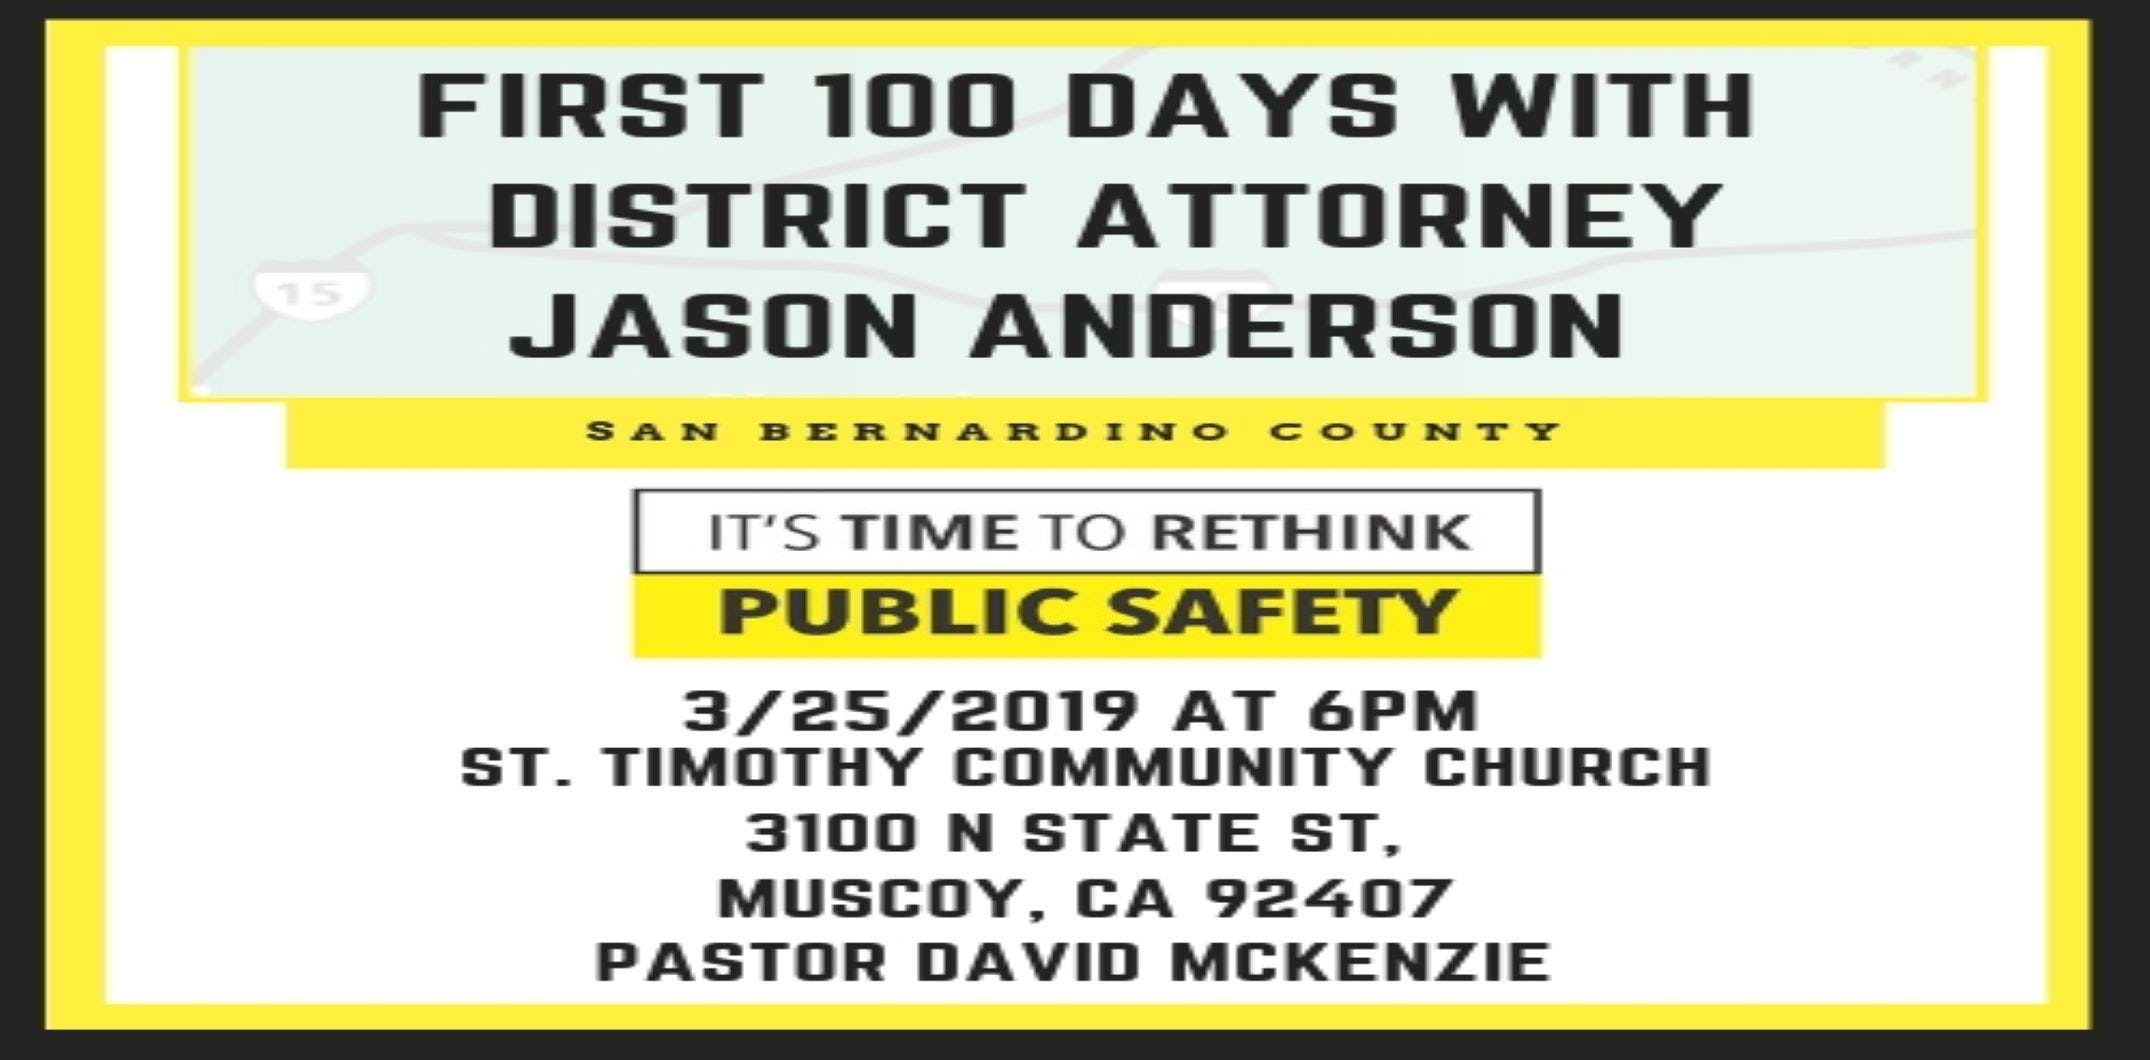 First 100 Days with District Attorney Jason A